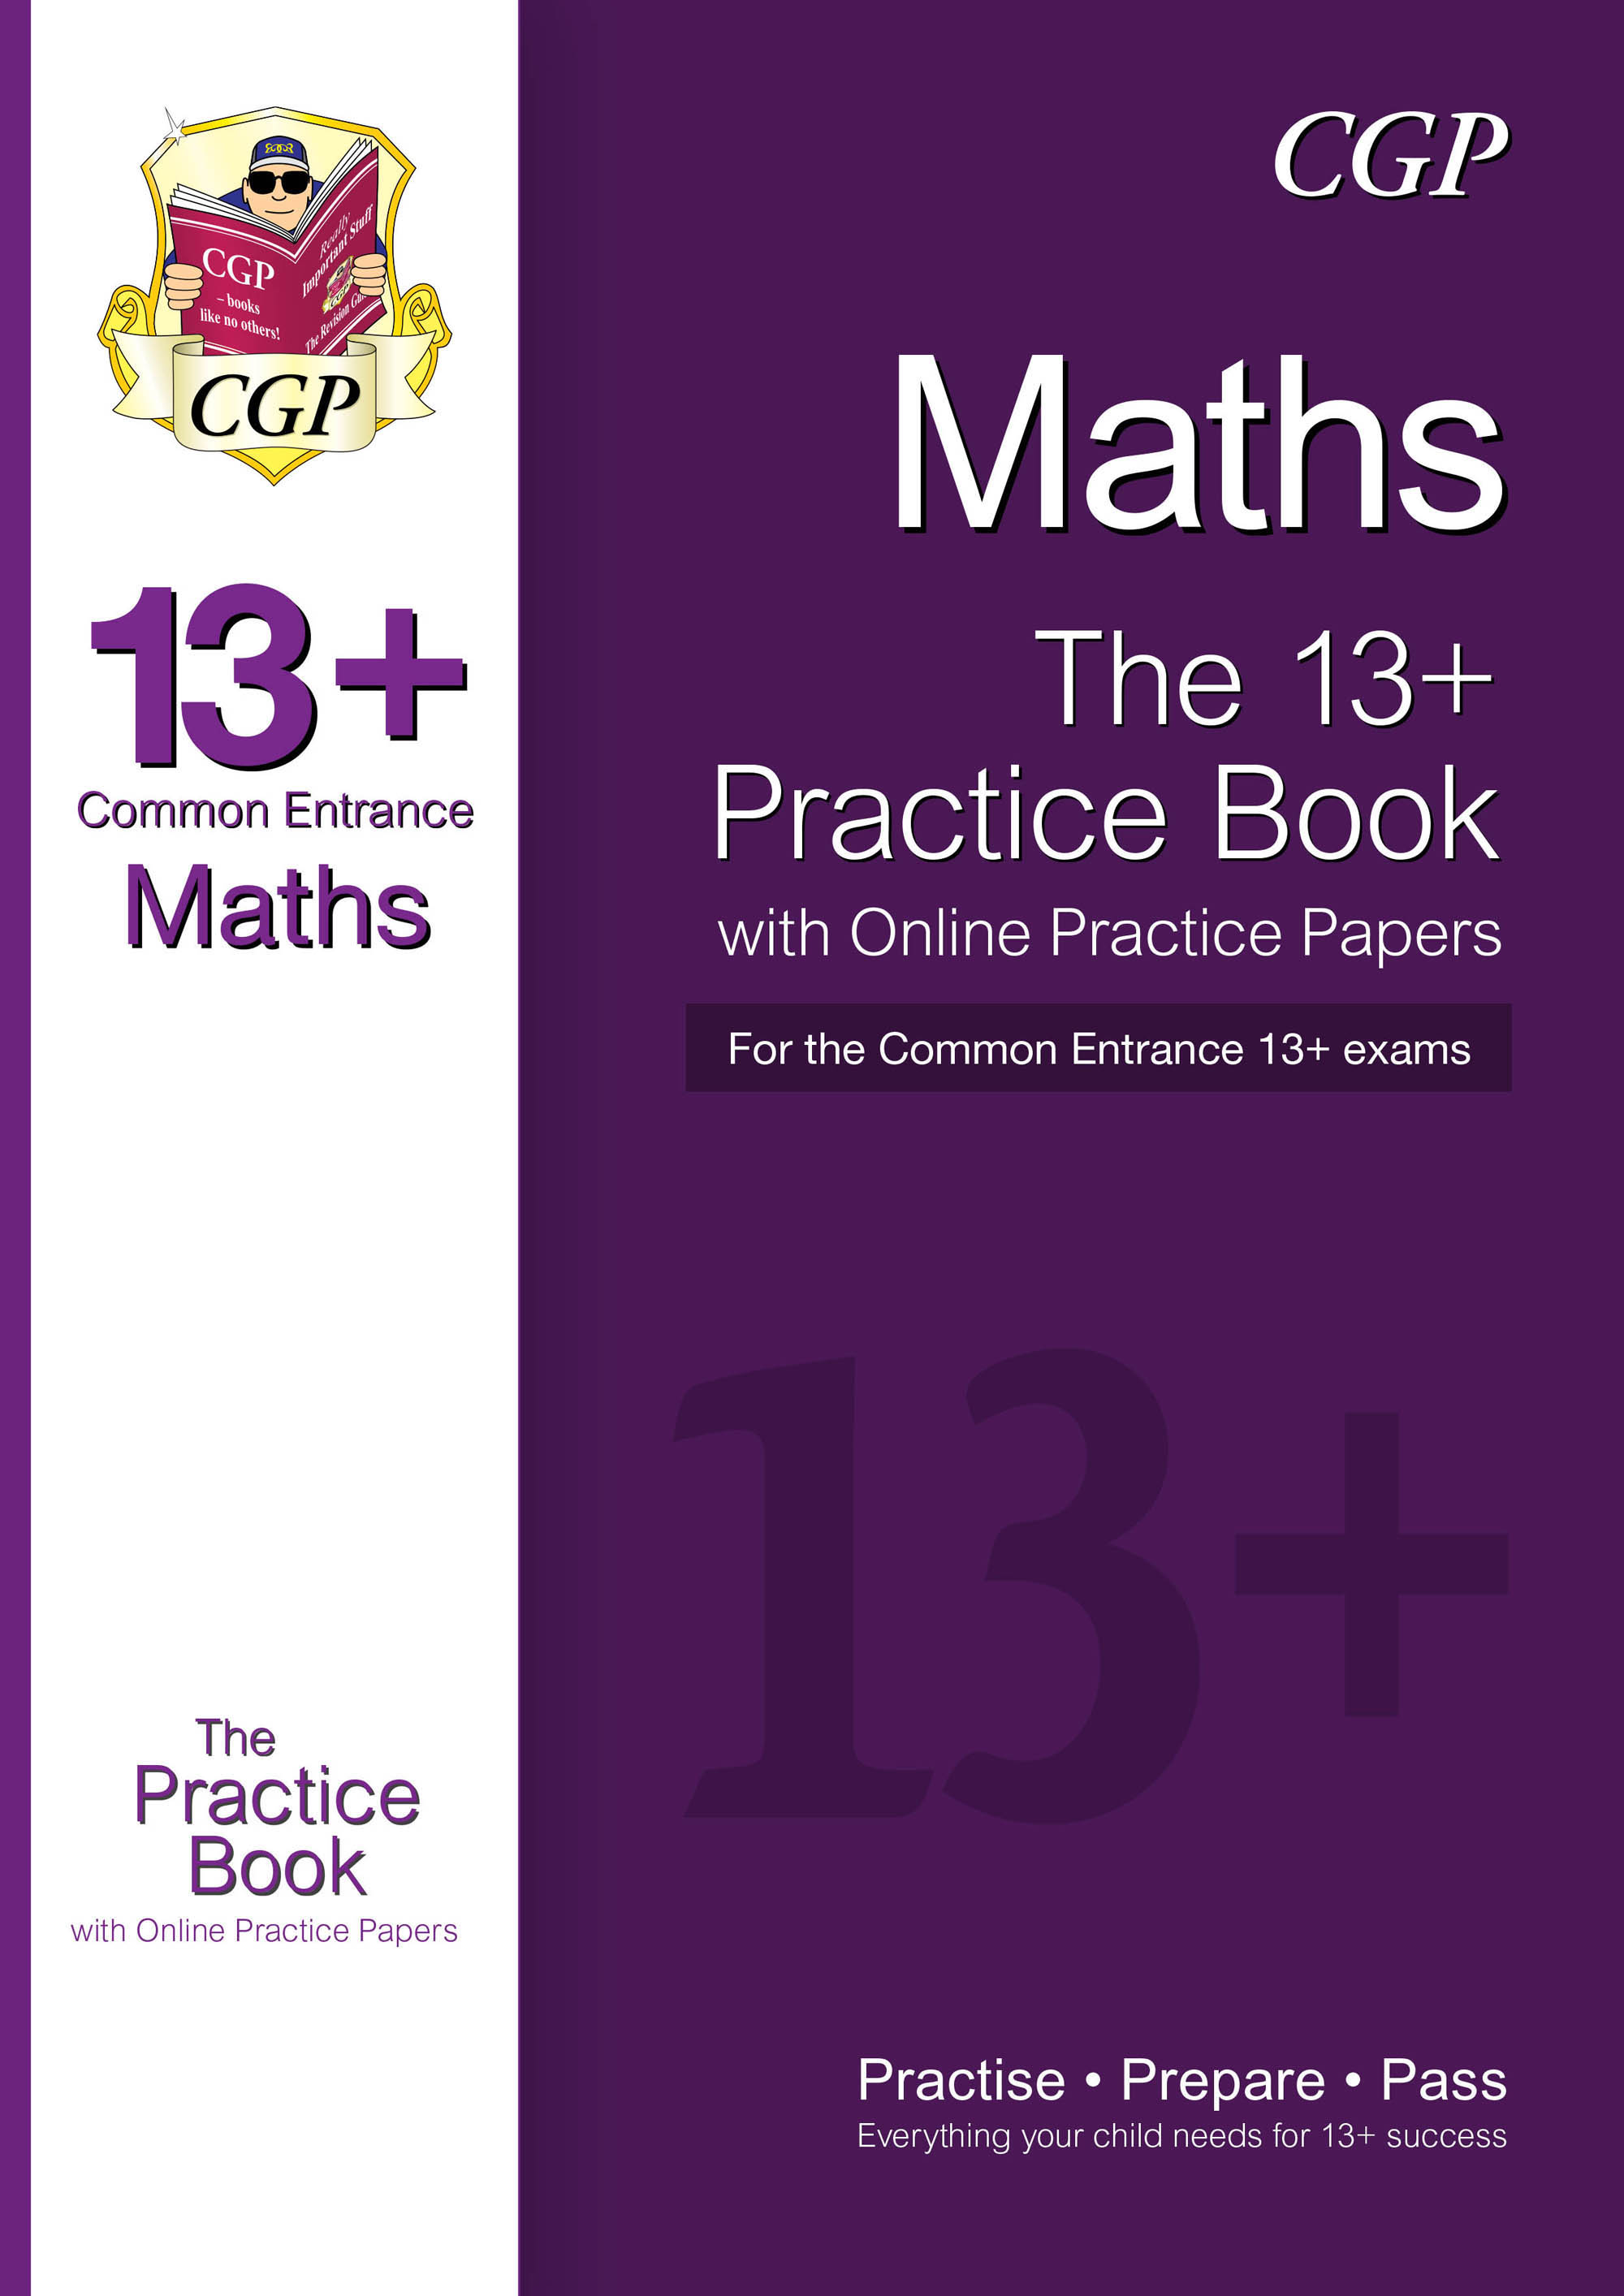 MIQT3DK - New 13+ Maths Practice Book for the Common Entrance Exams with Answers